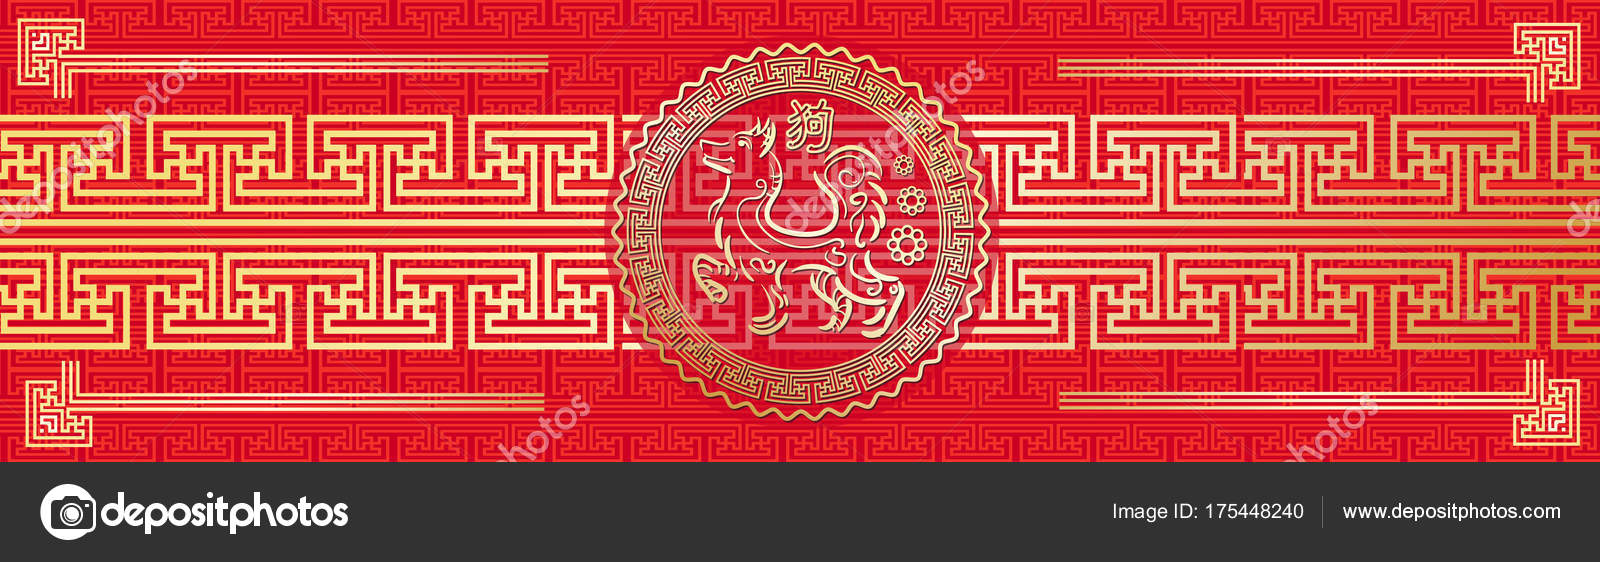 Happy chinese new year greeting card 2018 lunar dog symbol red and happy chinese new year greeting card 2018 lunar dog symbol red and golden colors horizontal banner m4hsunfo